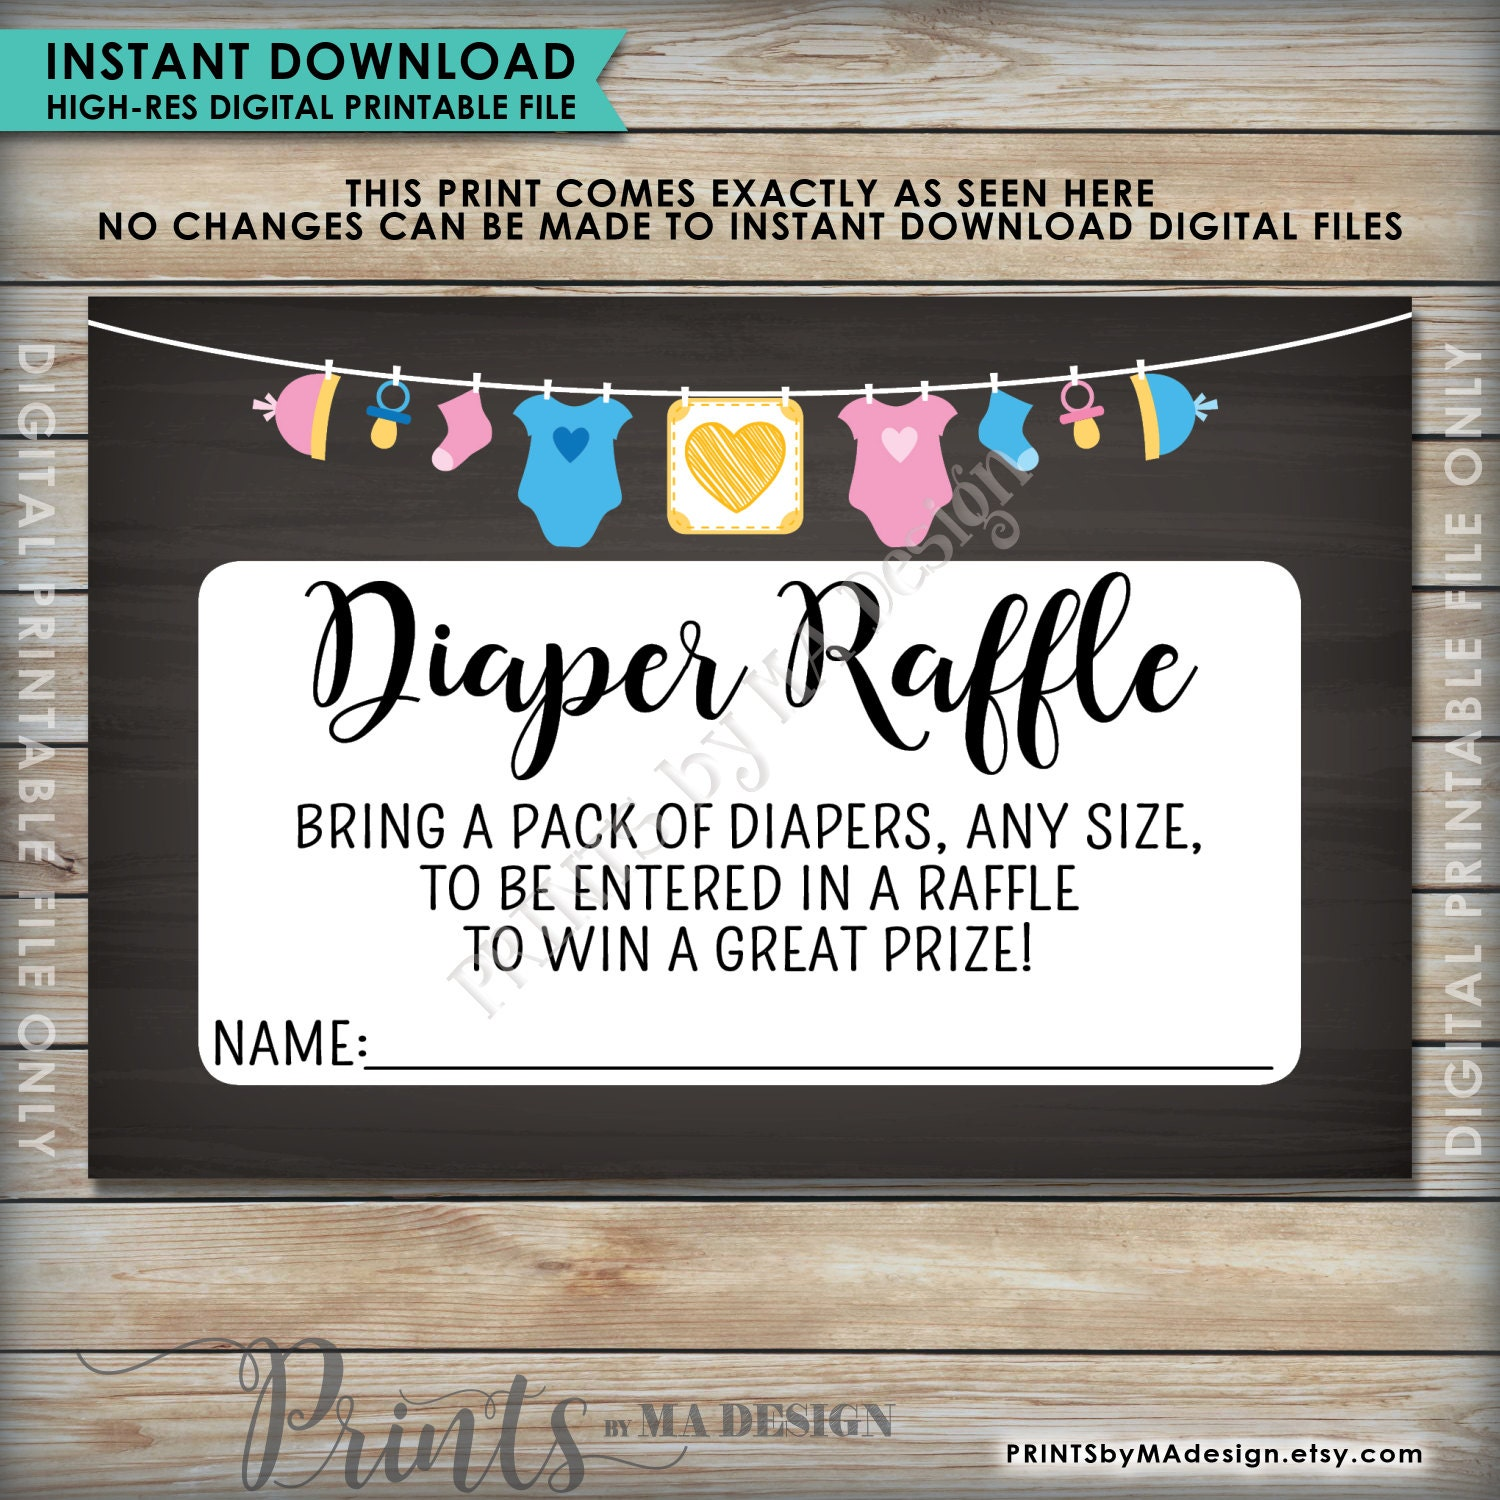 diaper raffle ticket sign cards baby shower raffle raffle to gallery photo gallery photo gallery photo gallery photo